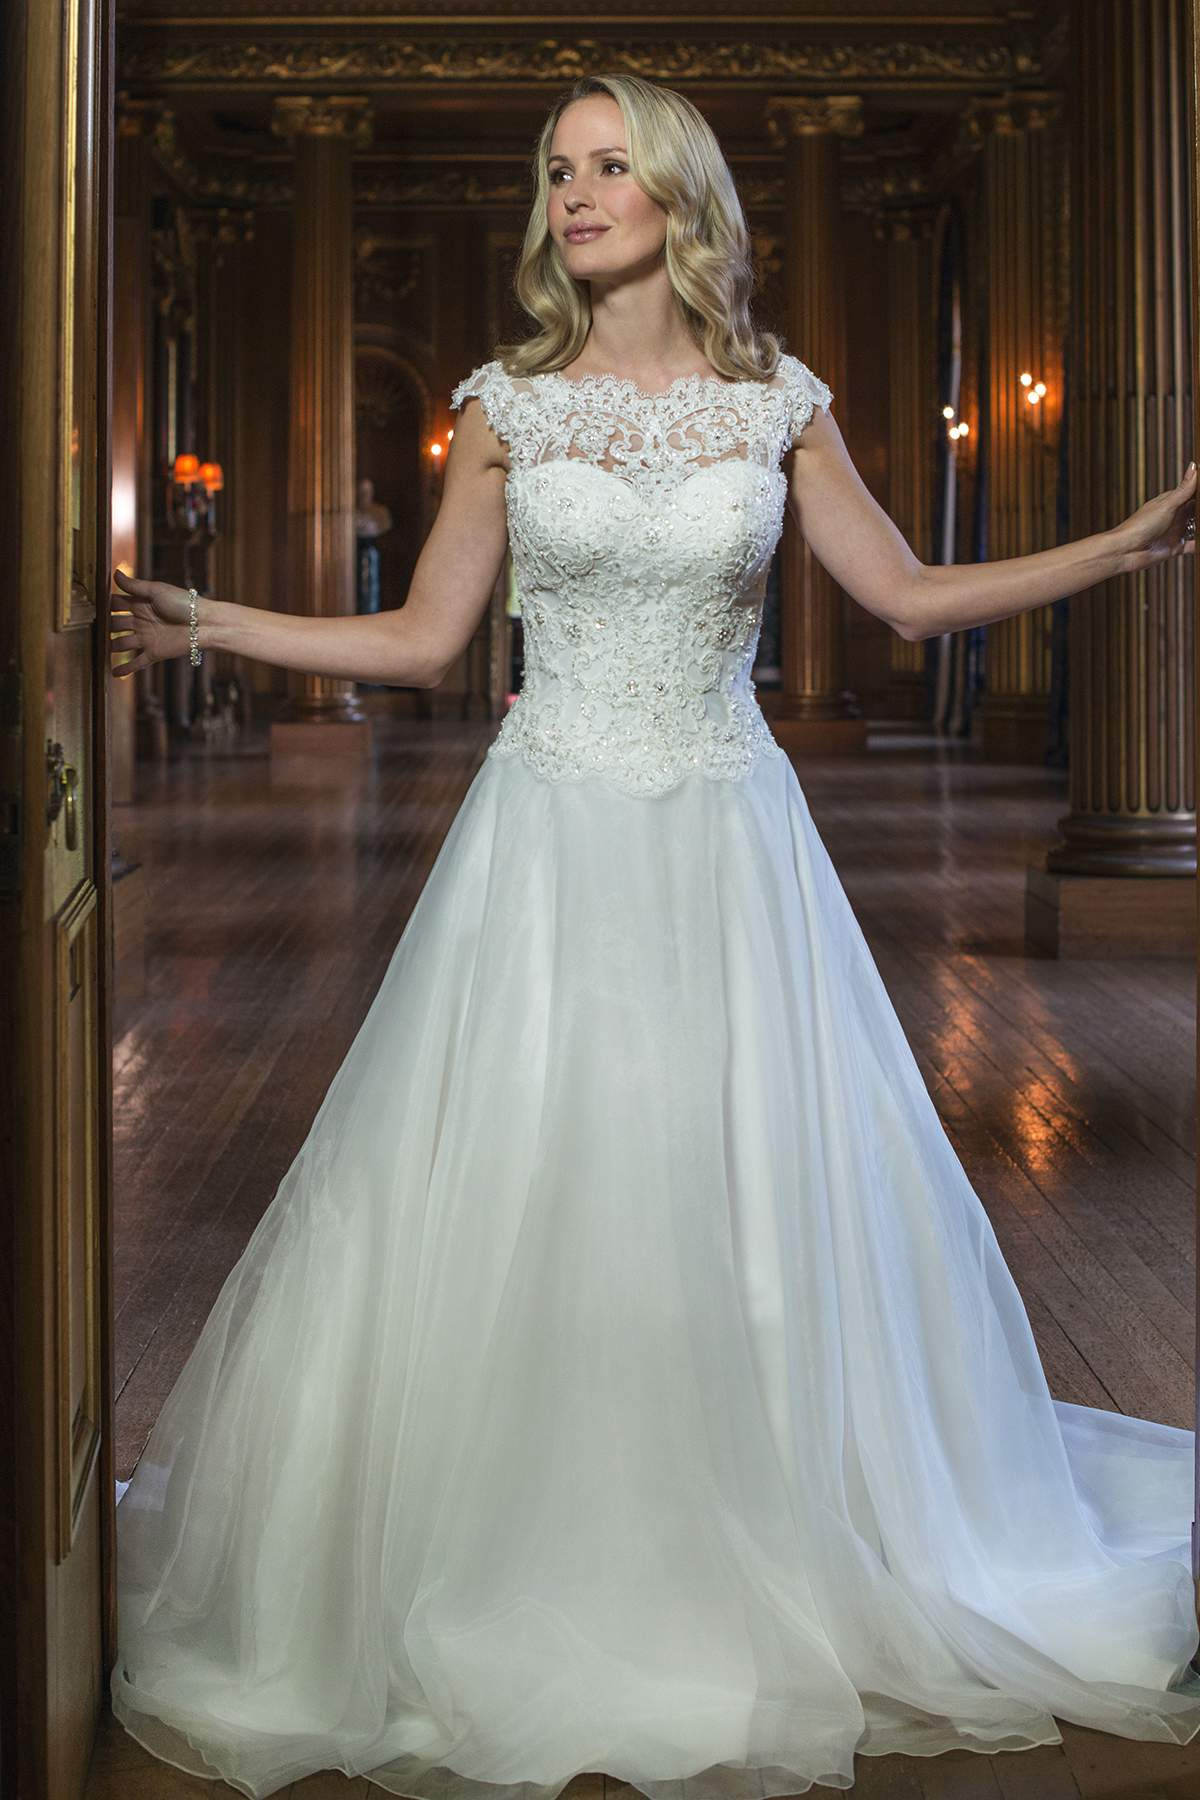 Style W433 by Alexia Bridal - Find Your Dream Dress